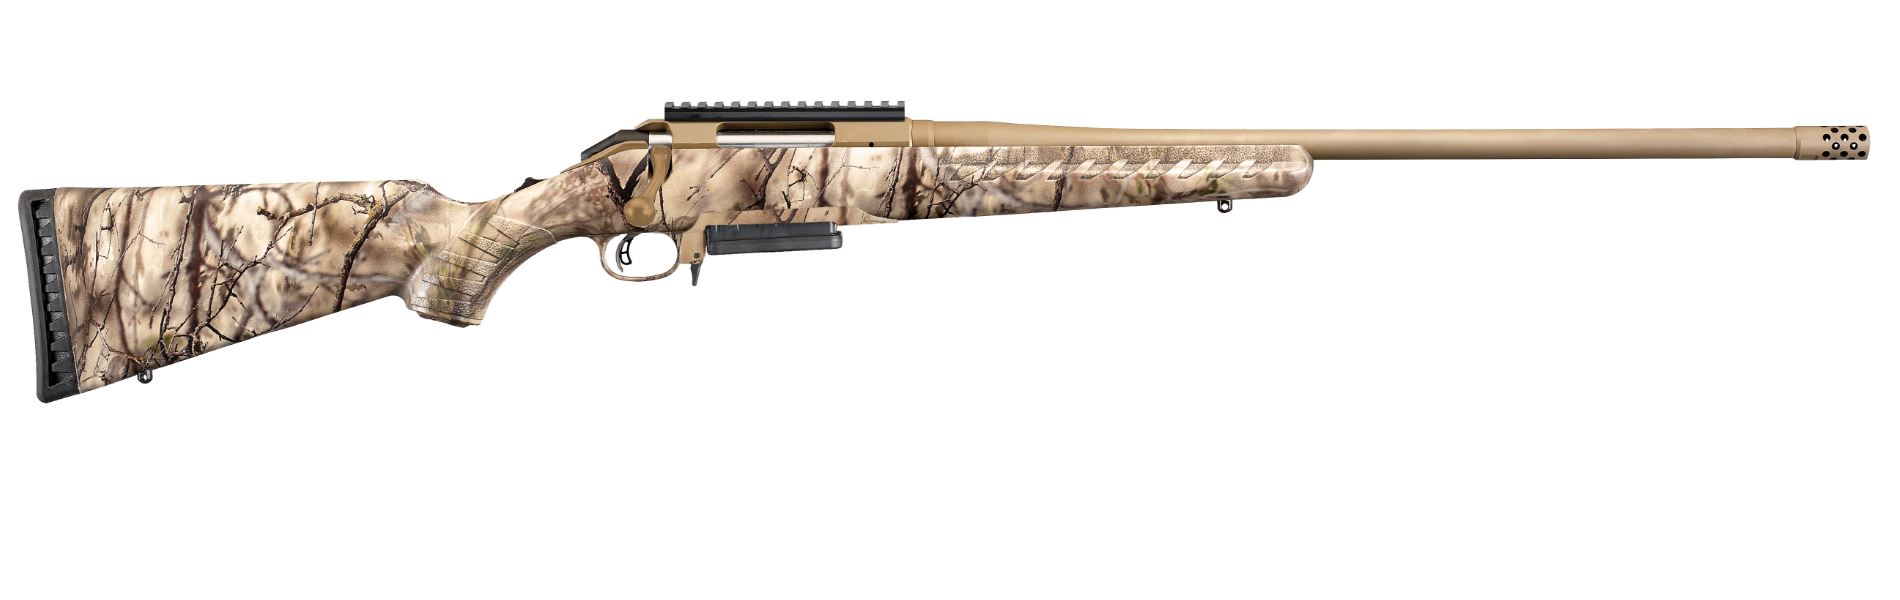 Ruger American Rifle 243 Win